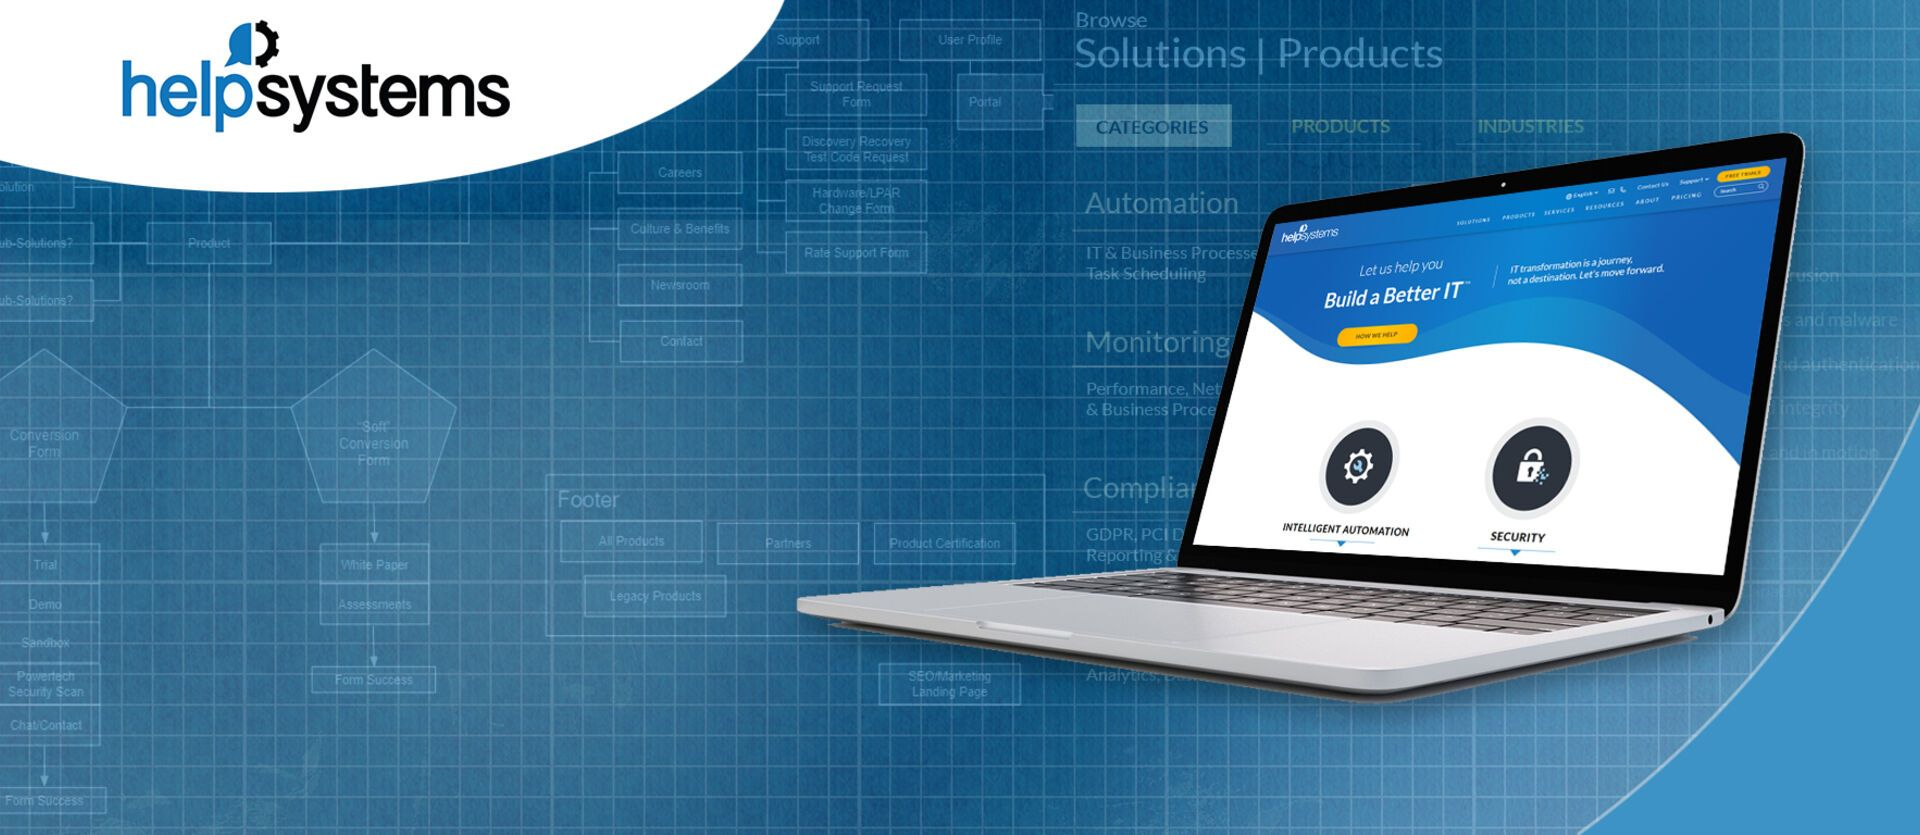 HelpSystems banner image